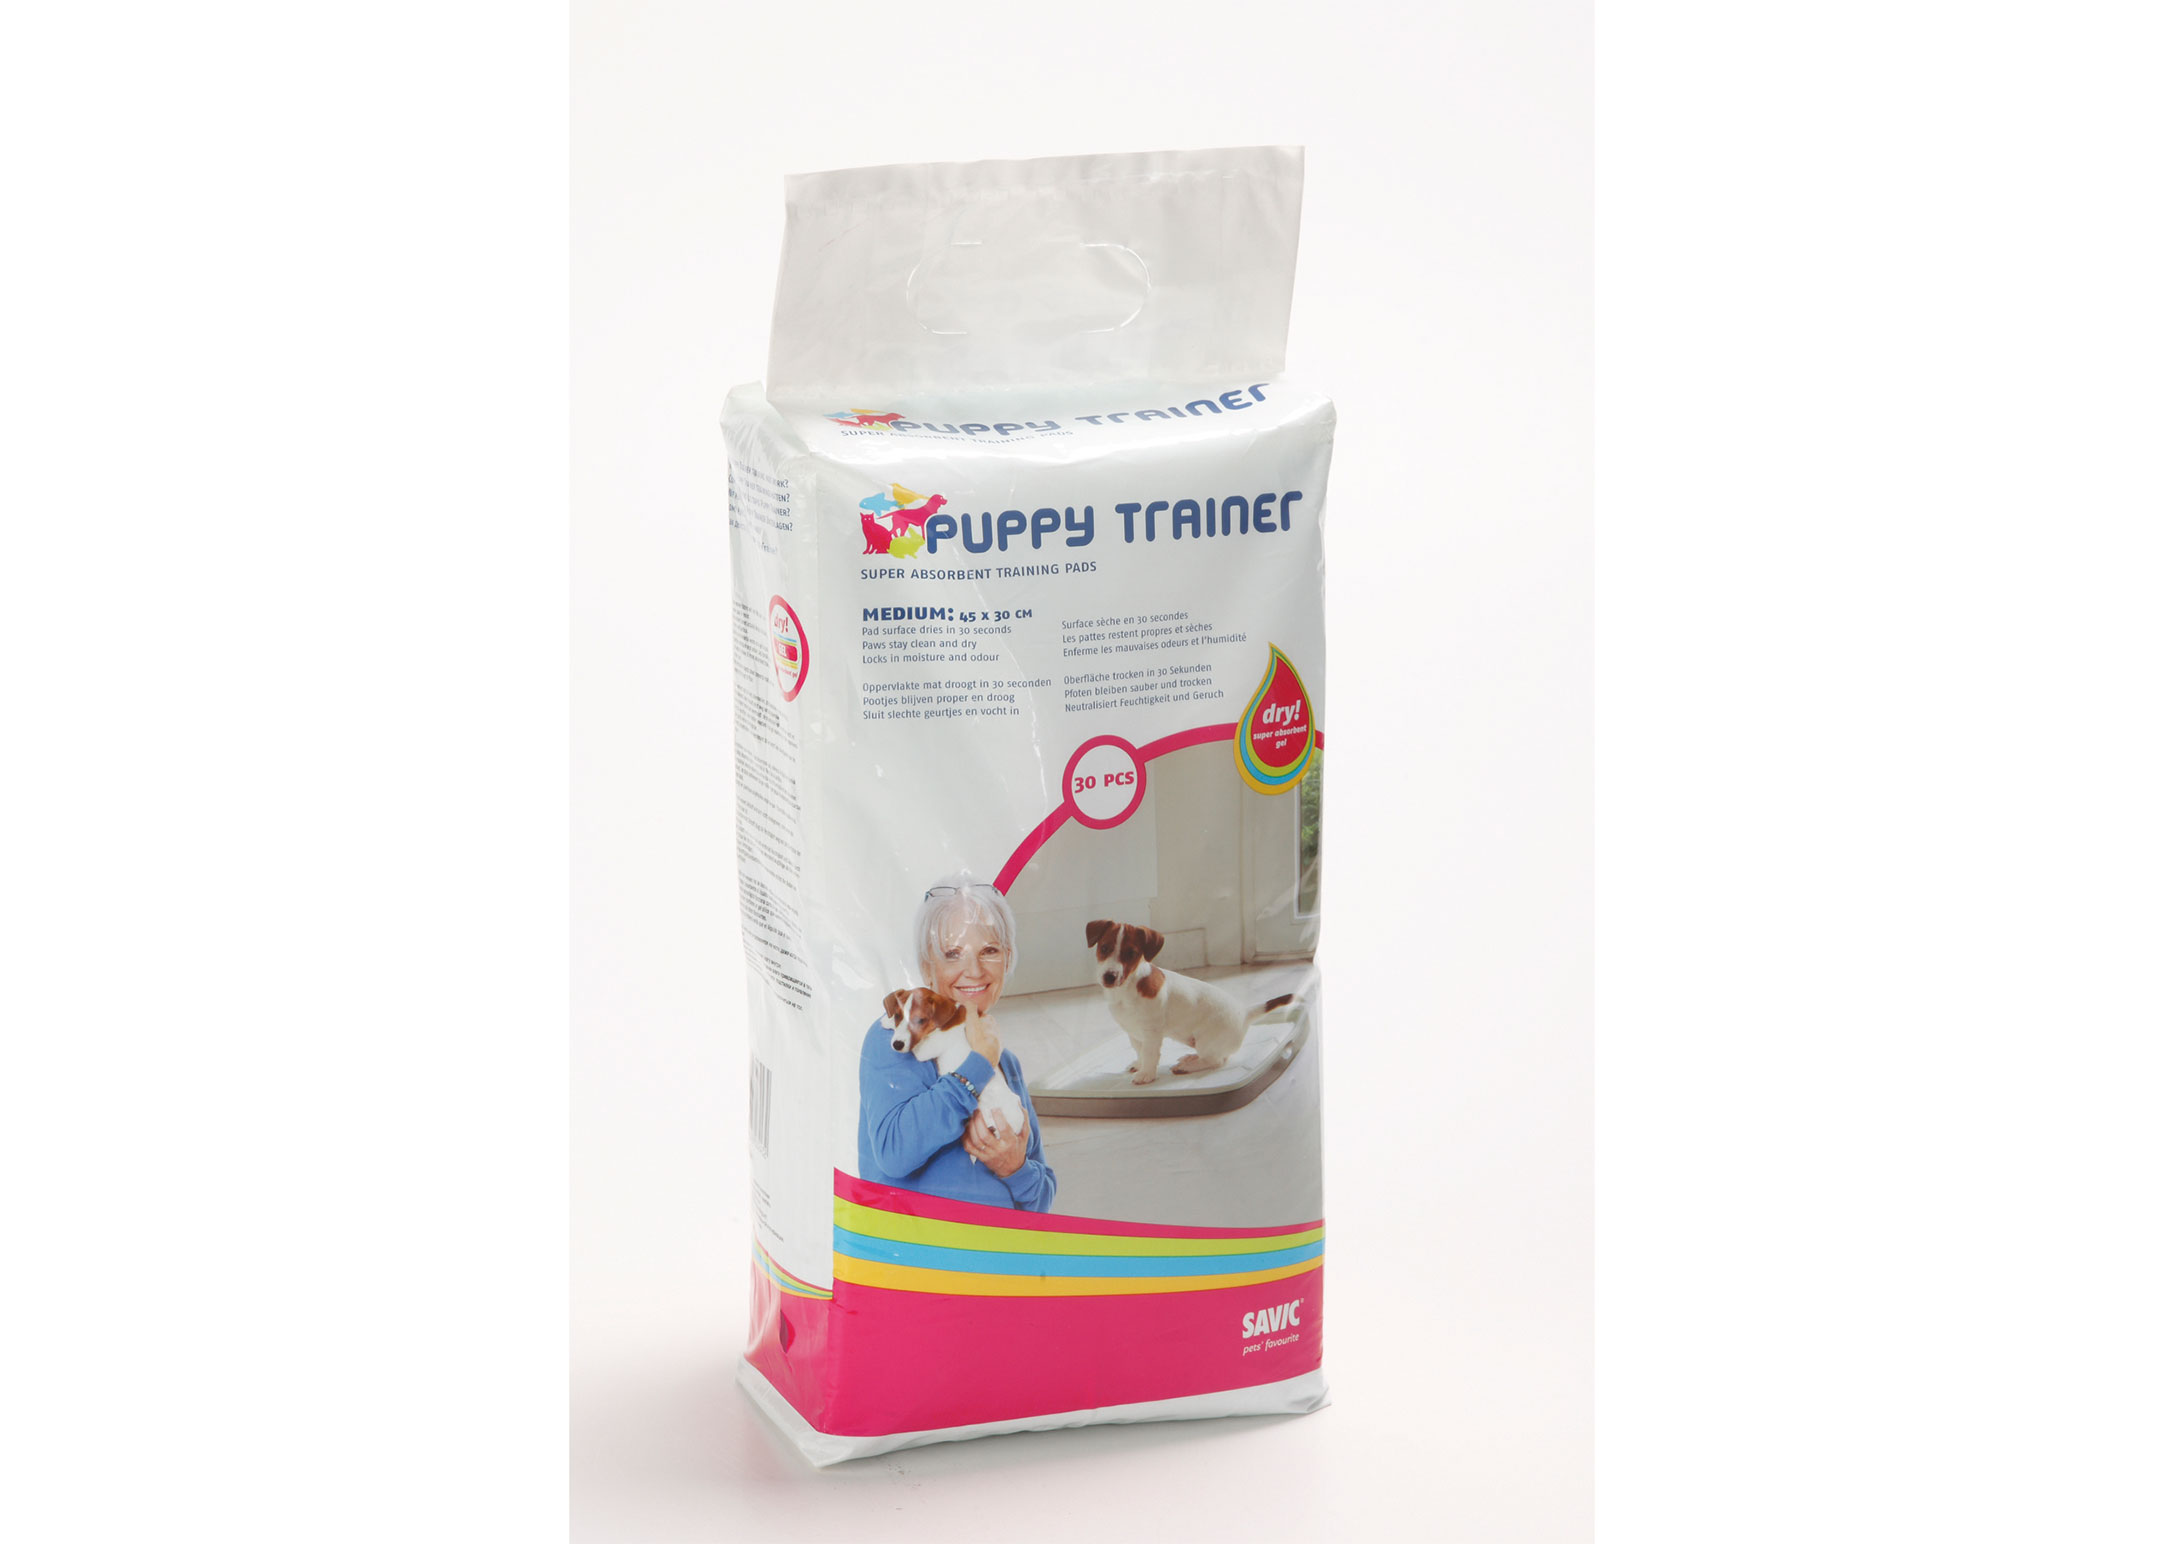 Puppylock Puppy Trainer Pads (30 pcs)